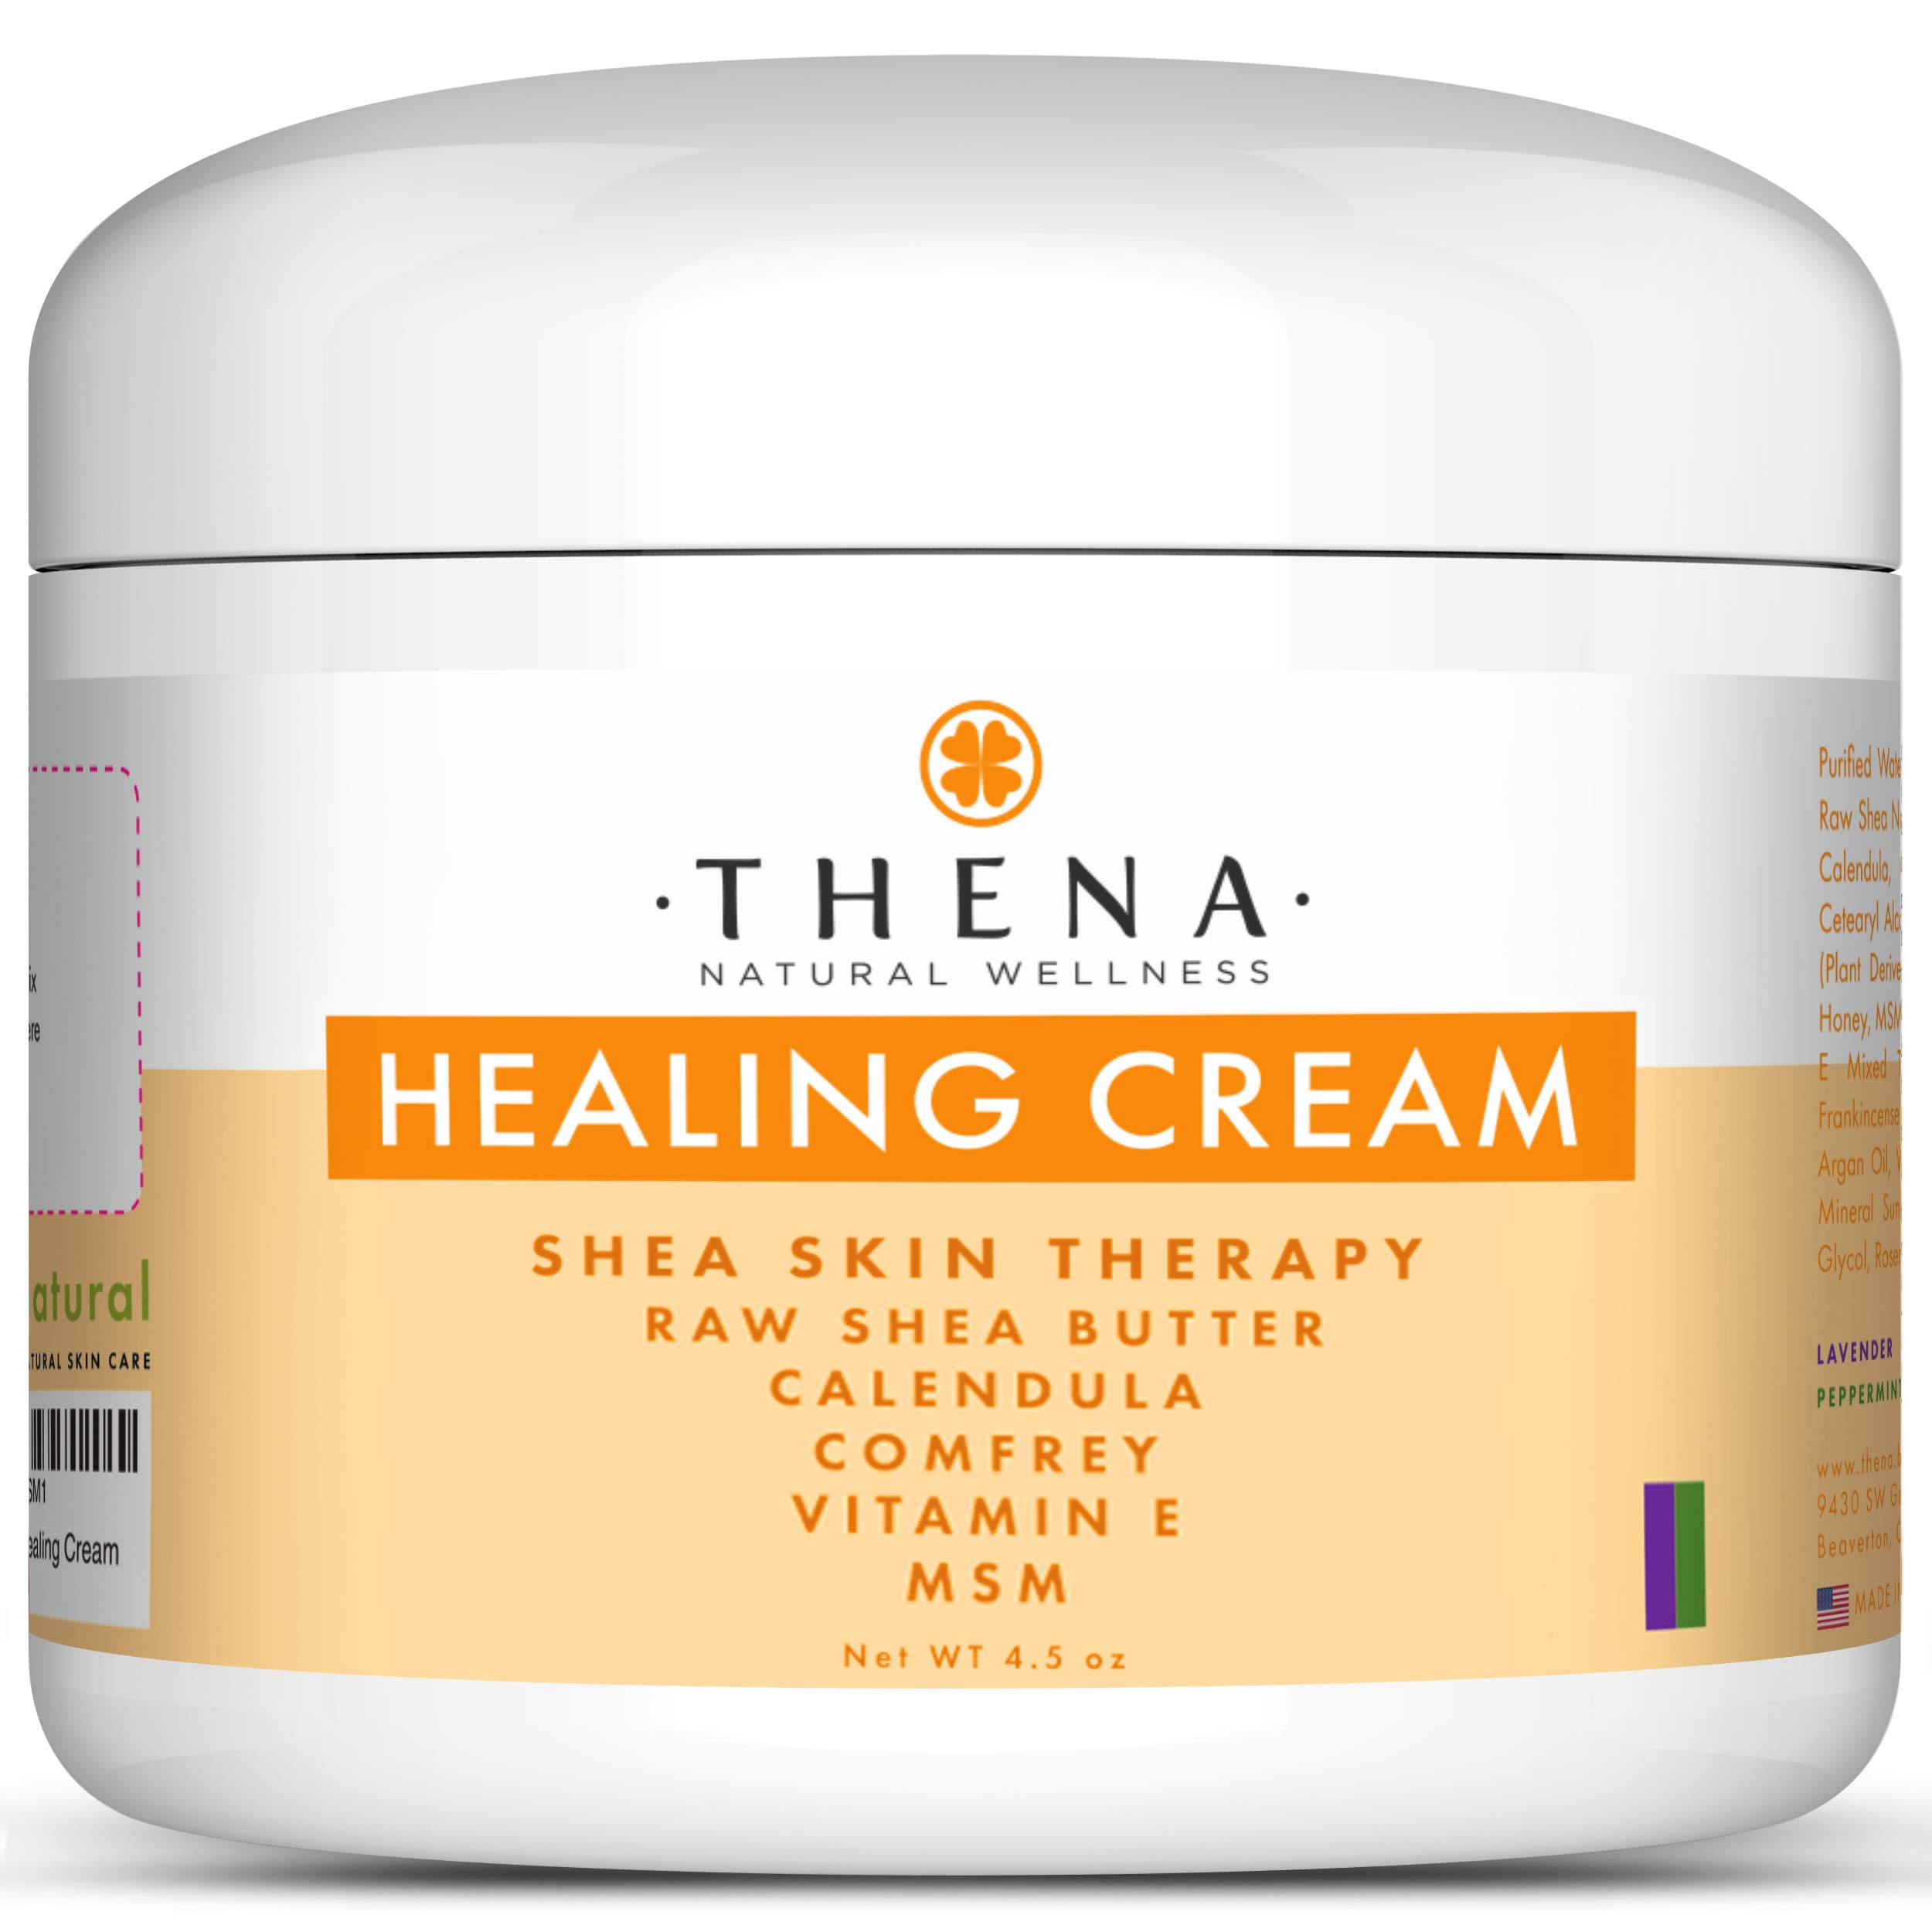 Healing Cream for Eczema Psoriasis, Organic Natural Moisturizer Lotion for Face Body Scalp Dry Itchy Irritated Cracked Skin, Anti Itch Relief Therapy Dermatitis Rashes Rosacea Shingles by THENA Natural Wellness